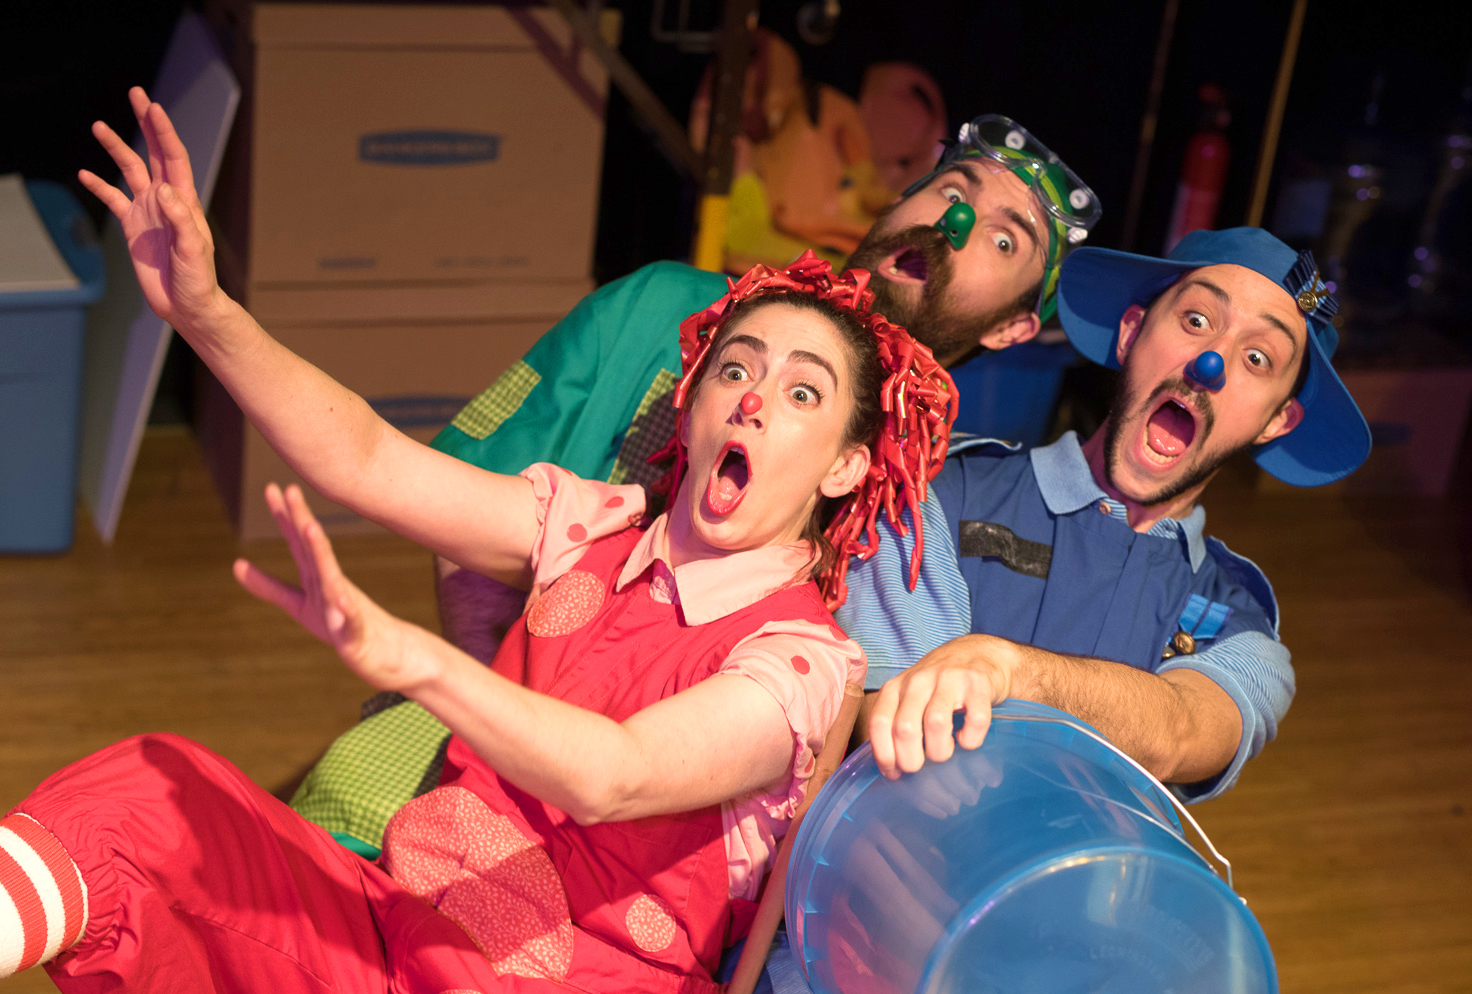 Rebecca Lehrhoff as Ruffles, Glen Moore as Poodge and Jesse Garlick as Marco. (Courtesy Chris McIntosh)